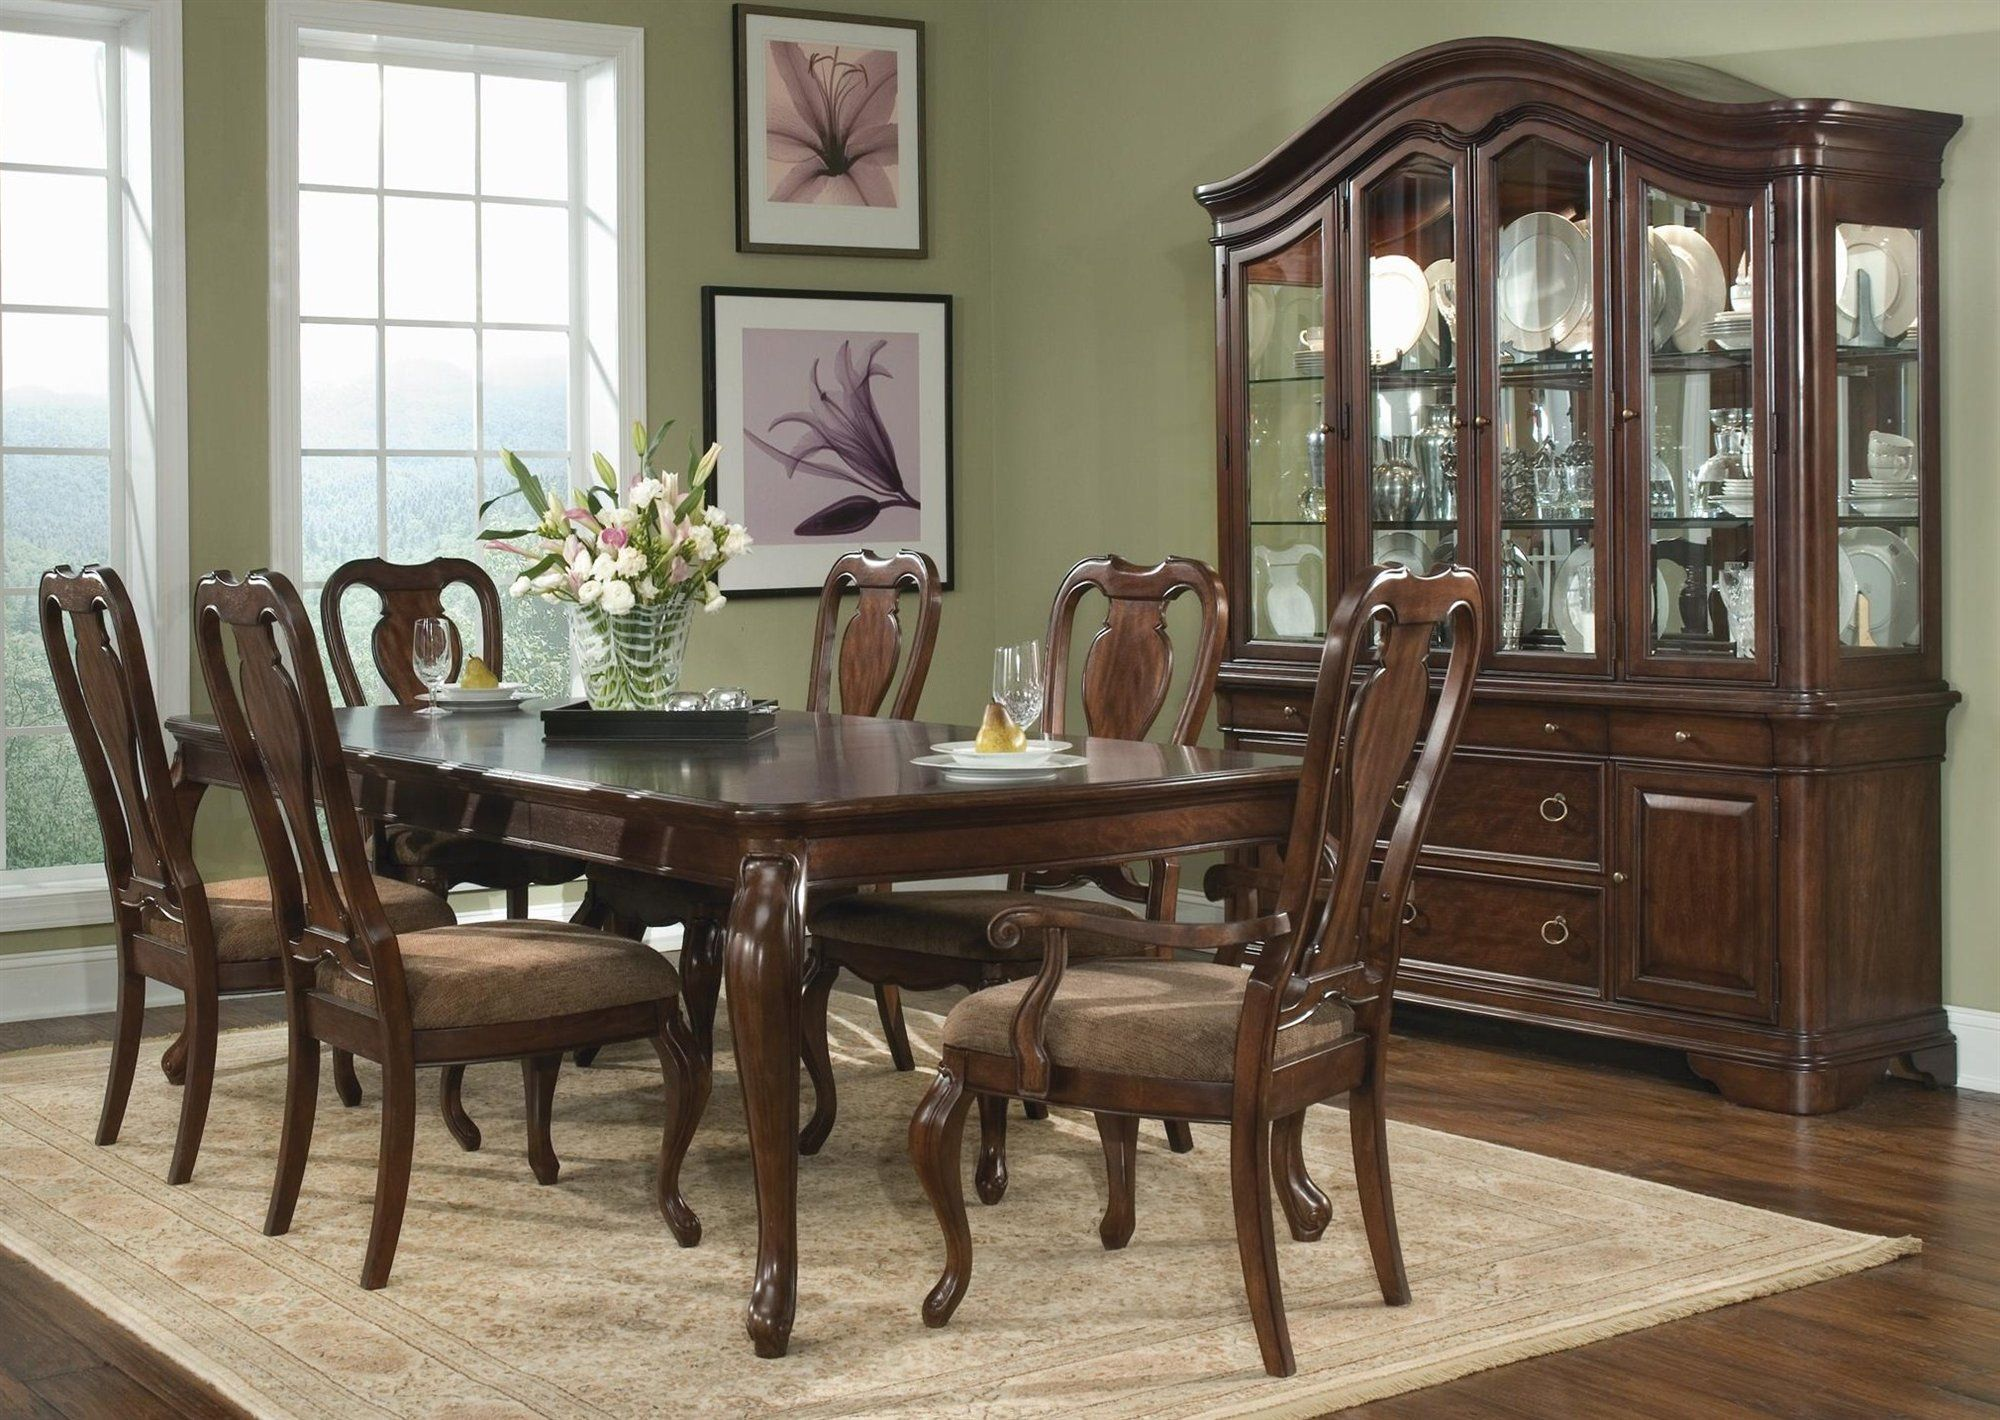 cherry dining room furniture | ... Chairs Dining Set in Cherry ...